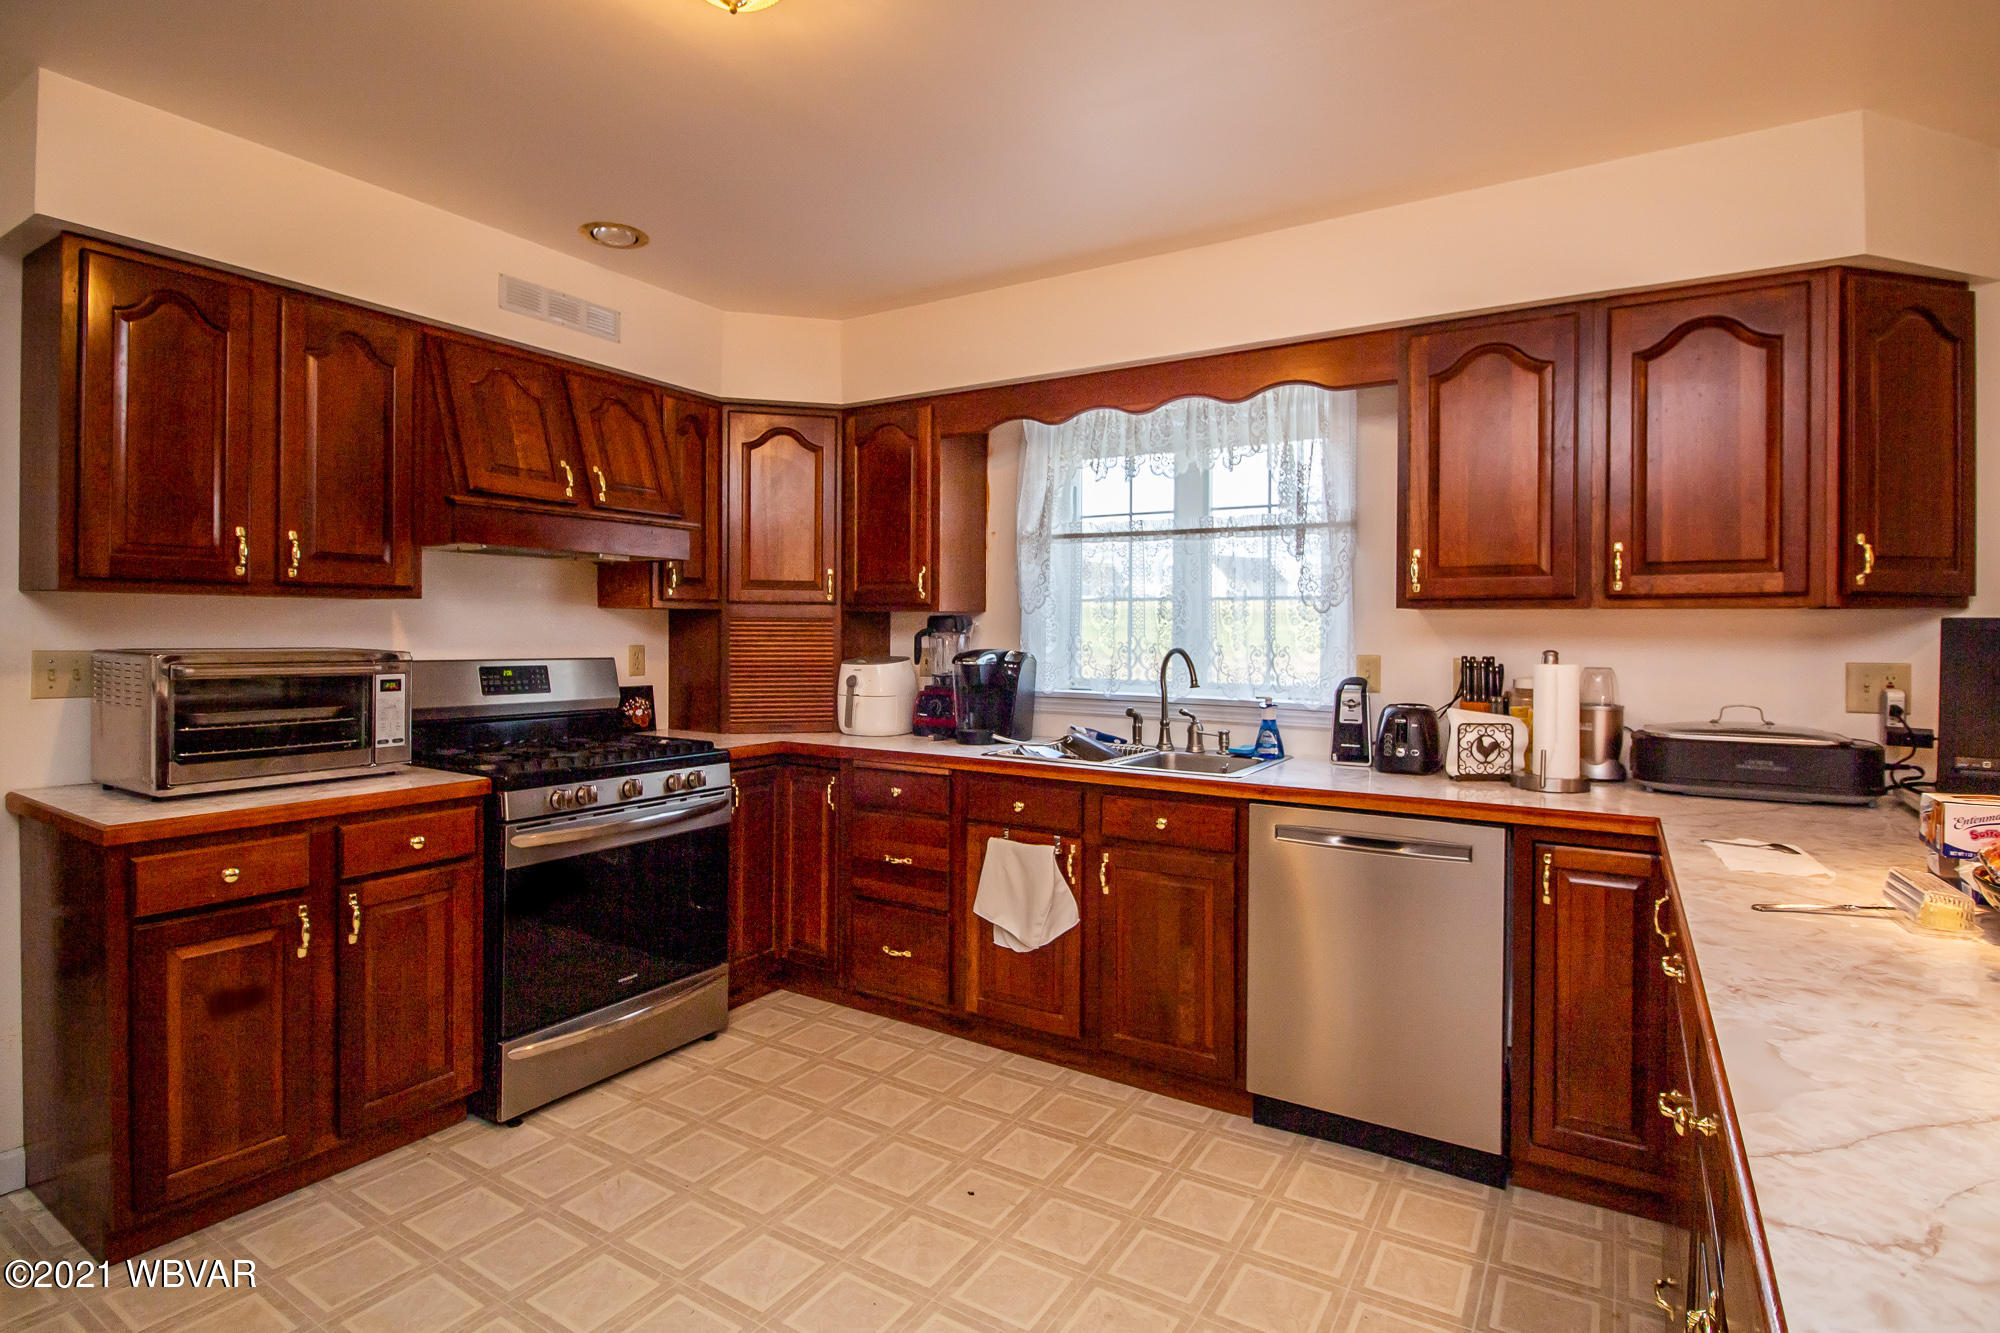 1190 LIME BLUFF ROAD, Muncy, PA 17756, 4 Bedrooms Bedrooms, ,3 BathroomsBathrooms,Residential,For sale,LIME BLUFF,WB-91722